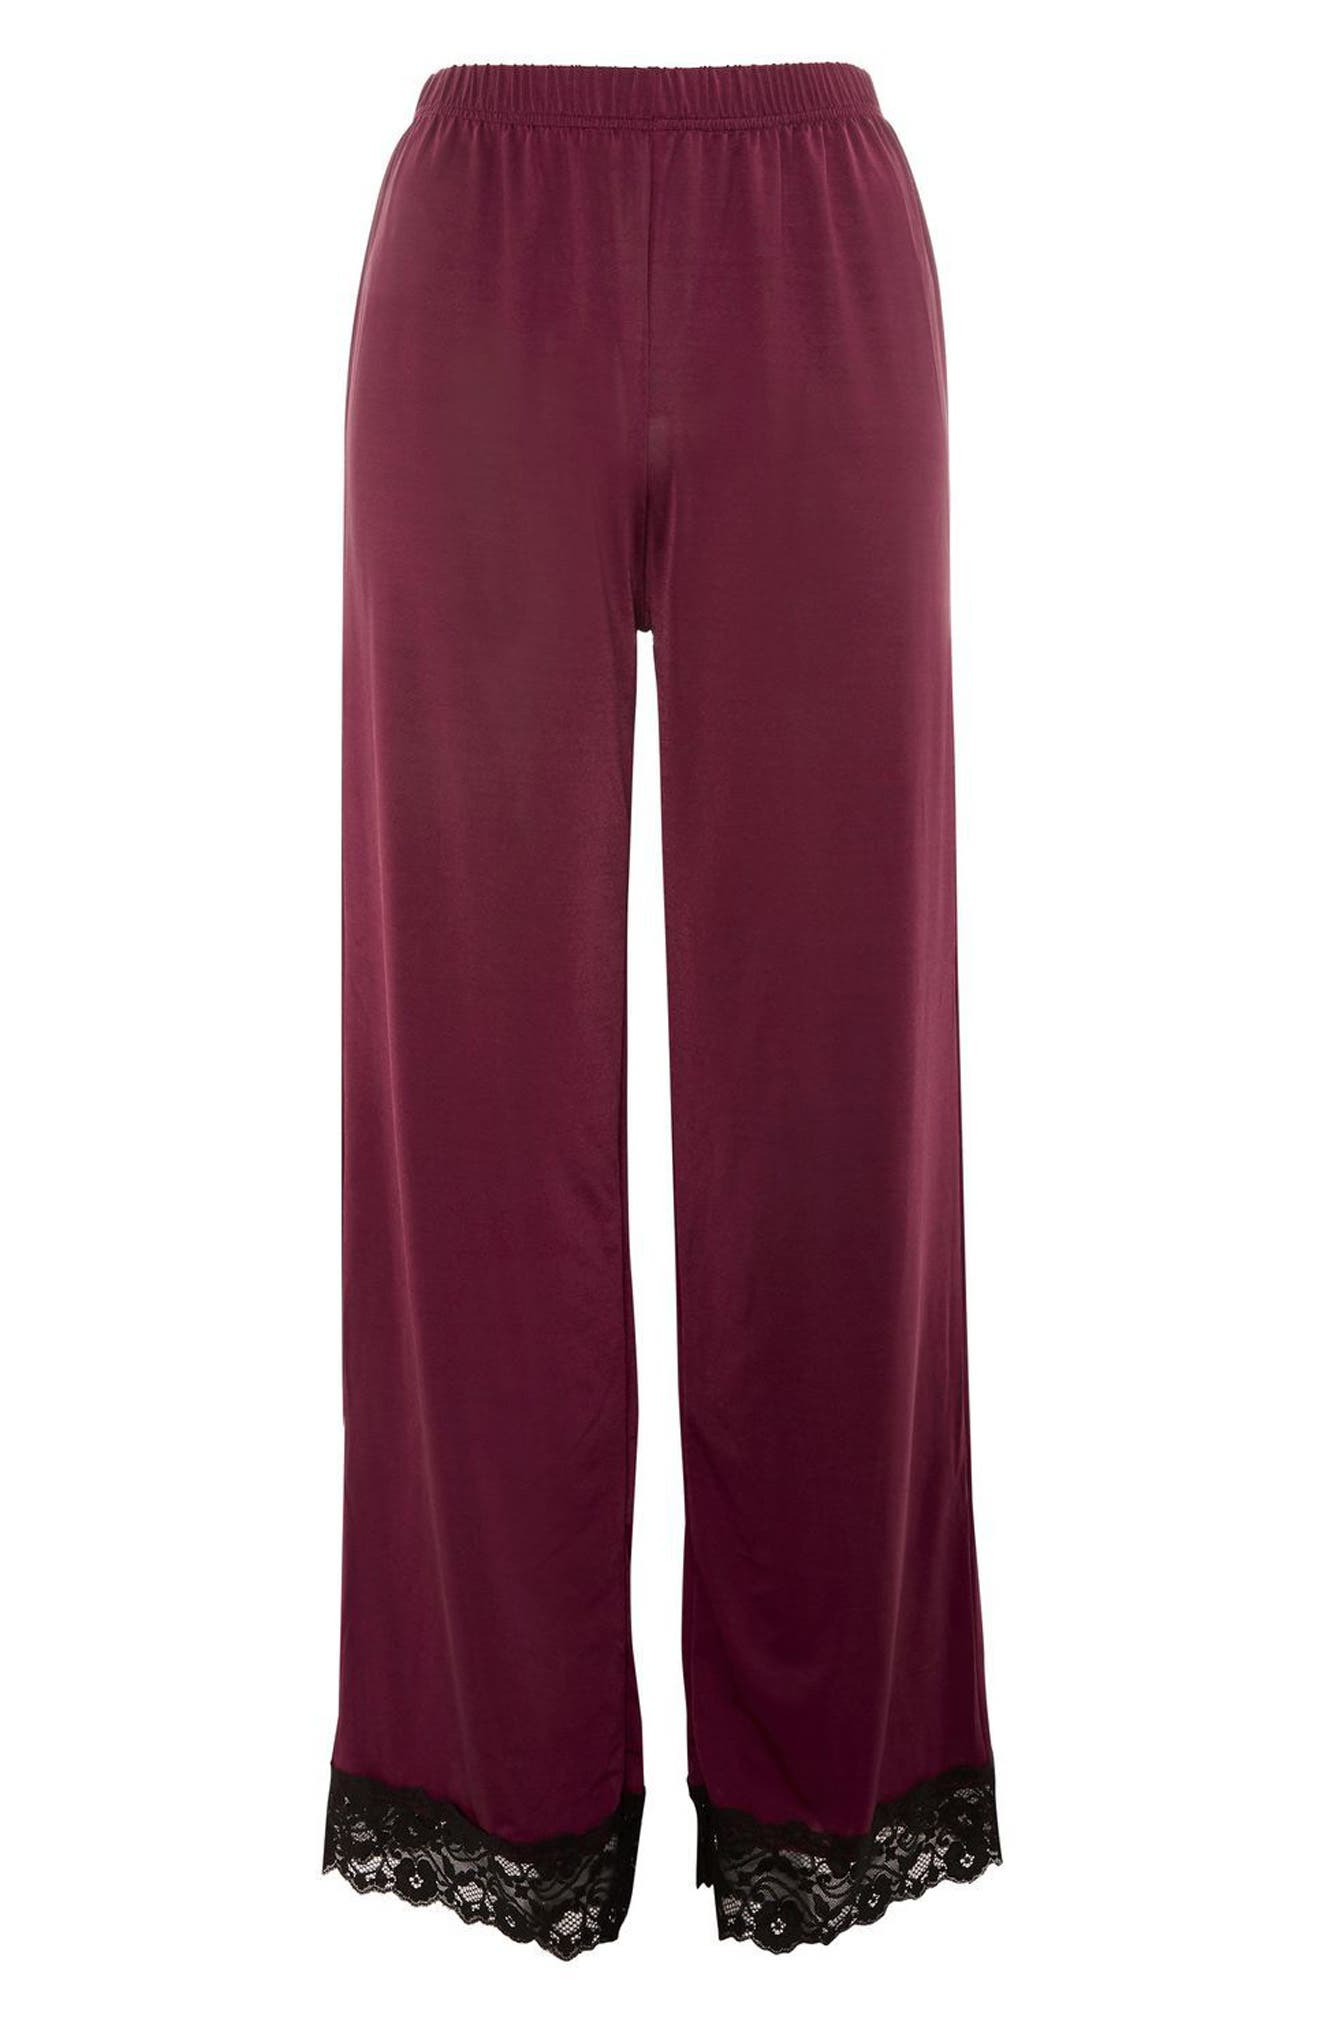 Jersey Satin & Lace Pajama Pants,                             Alternate thumbnail 4, color,                             930